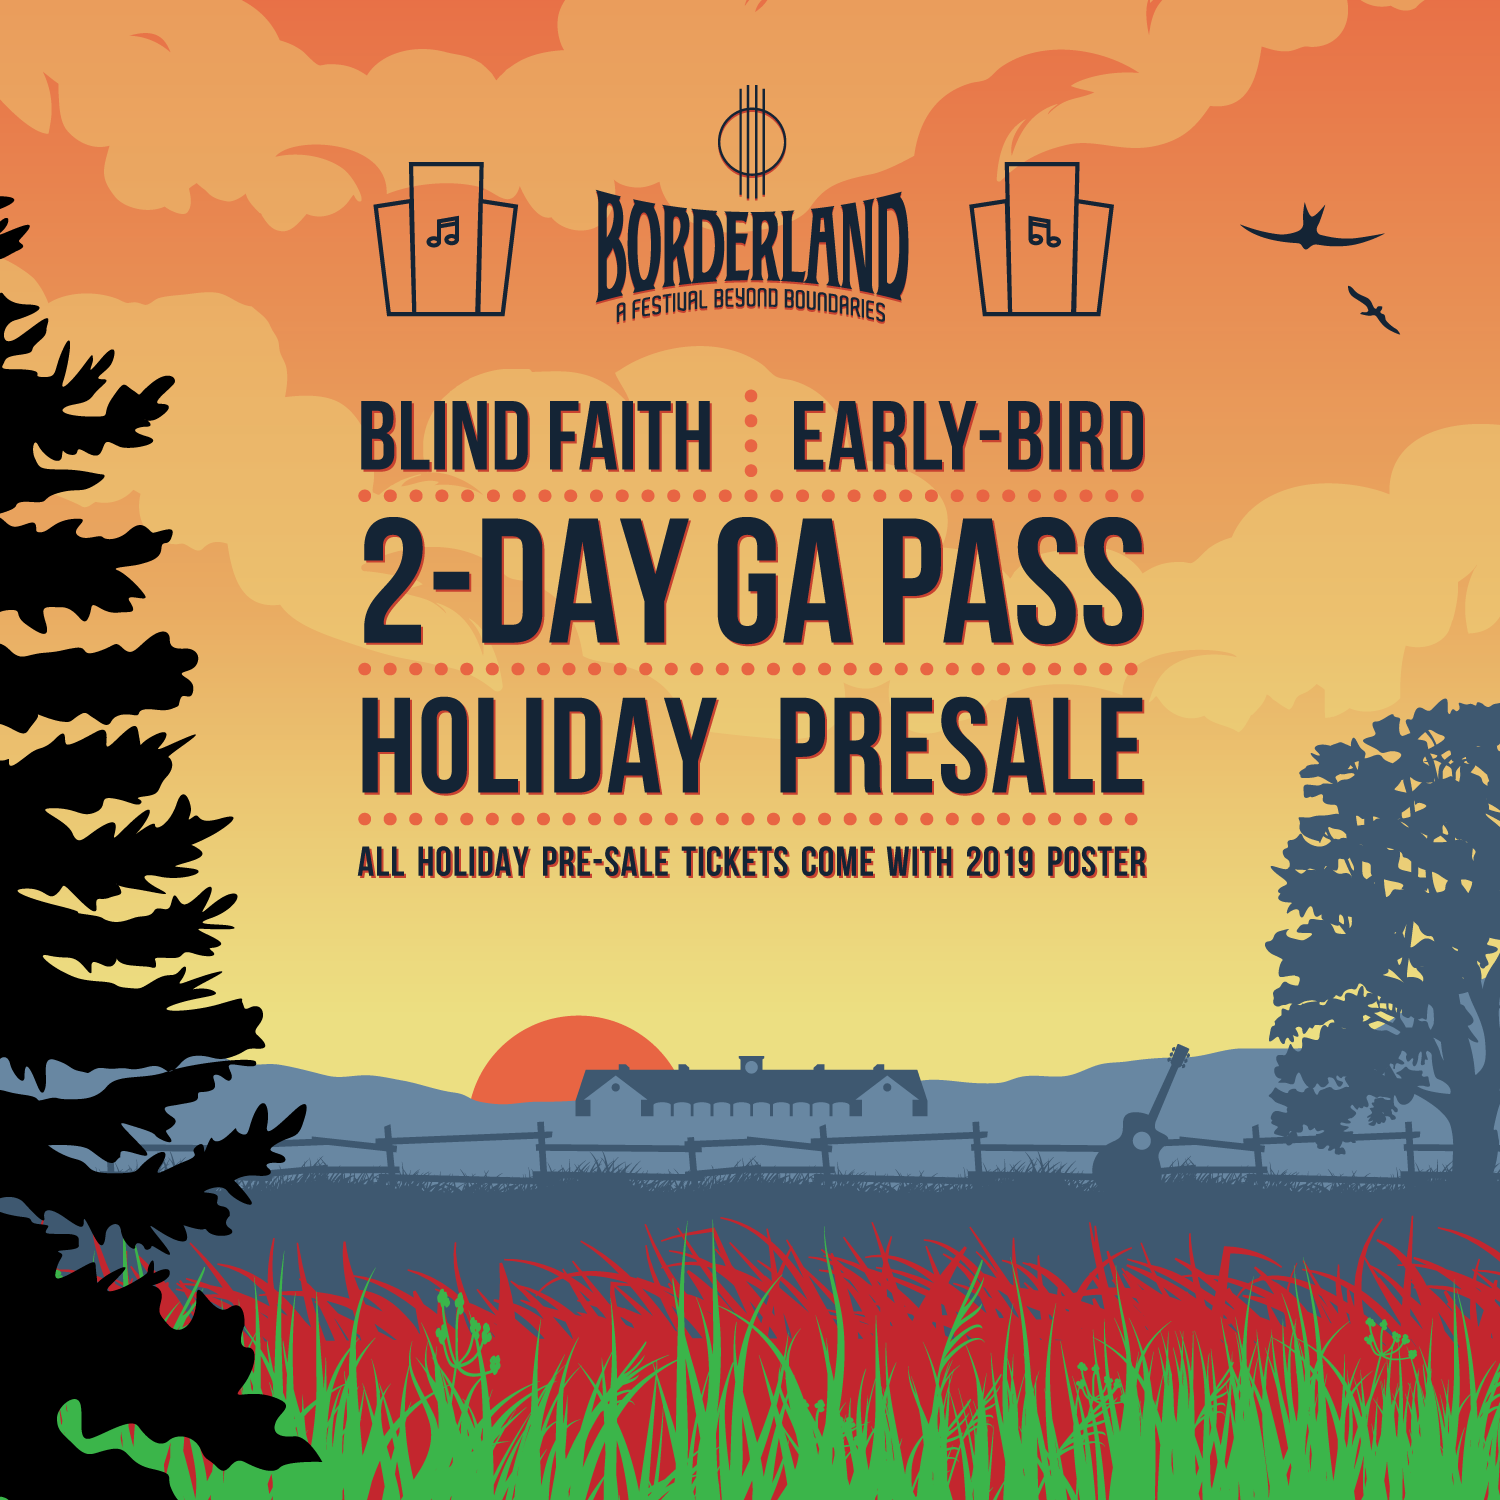 BORDERLAND FESTIVAL HOLIDAY PRE-SALE TICKETS ON SALE!